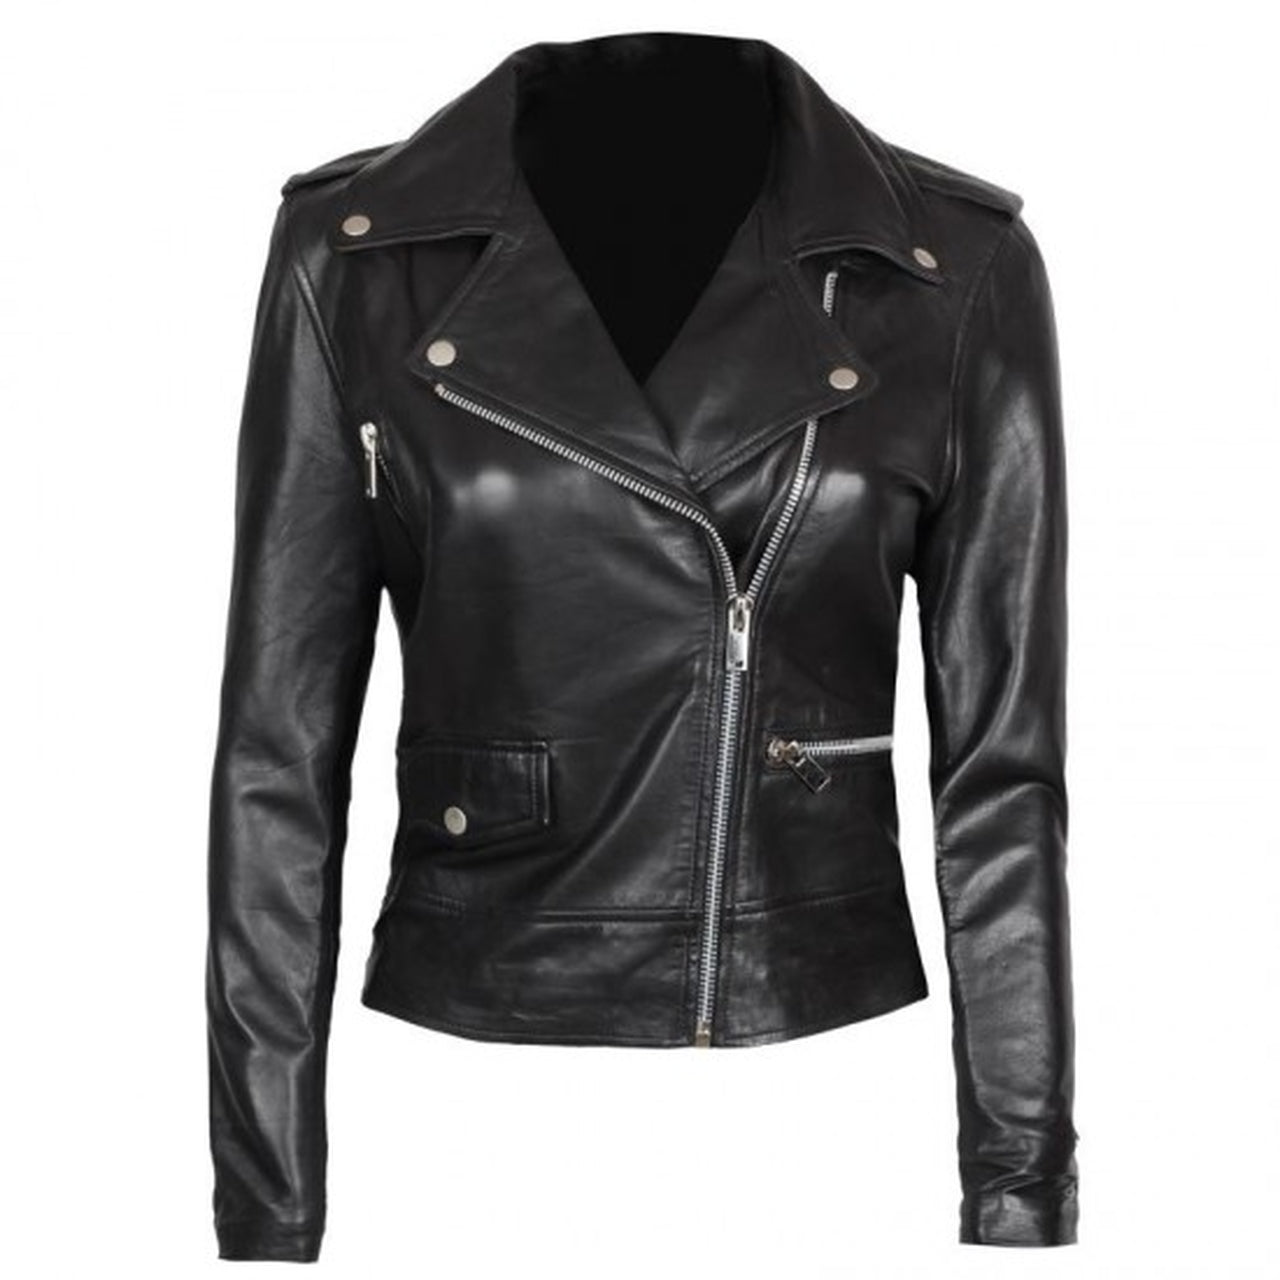 Asymmetrical Black Biker Jacket Women - Leather Jacket